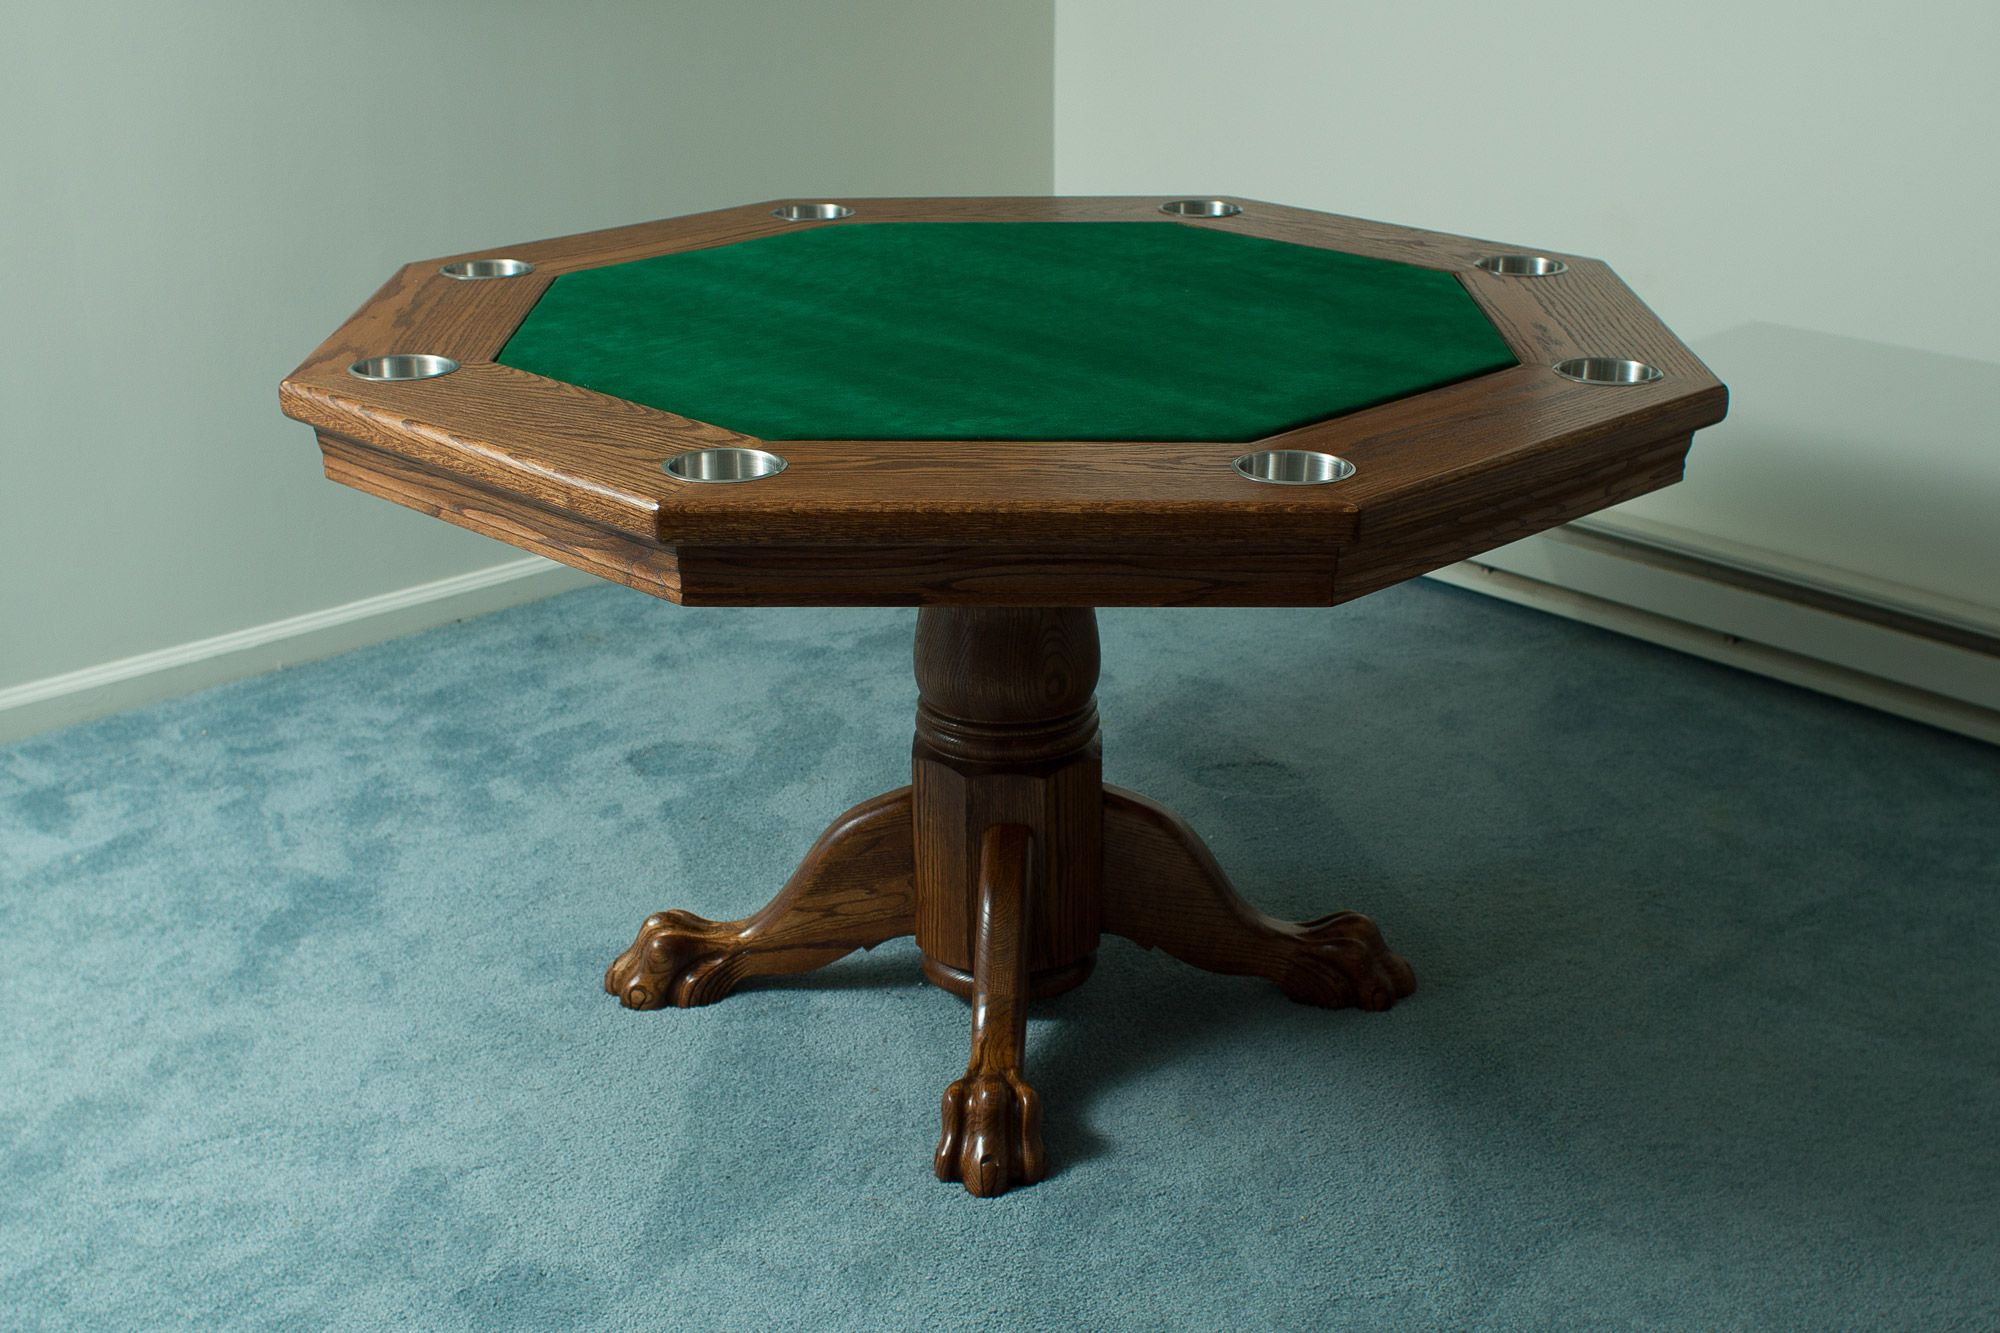 Woodworking Plans Reviewed How To Build A Poker Table Step By Step Instruct Poker Table Diy Poker Table Plans Octagon Poker Table